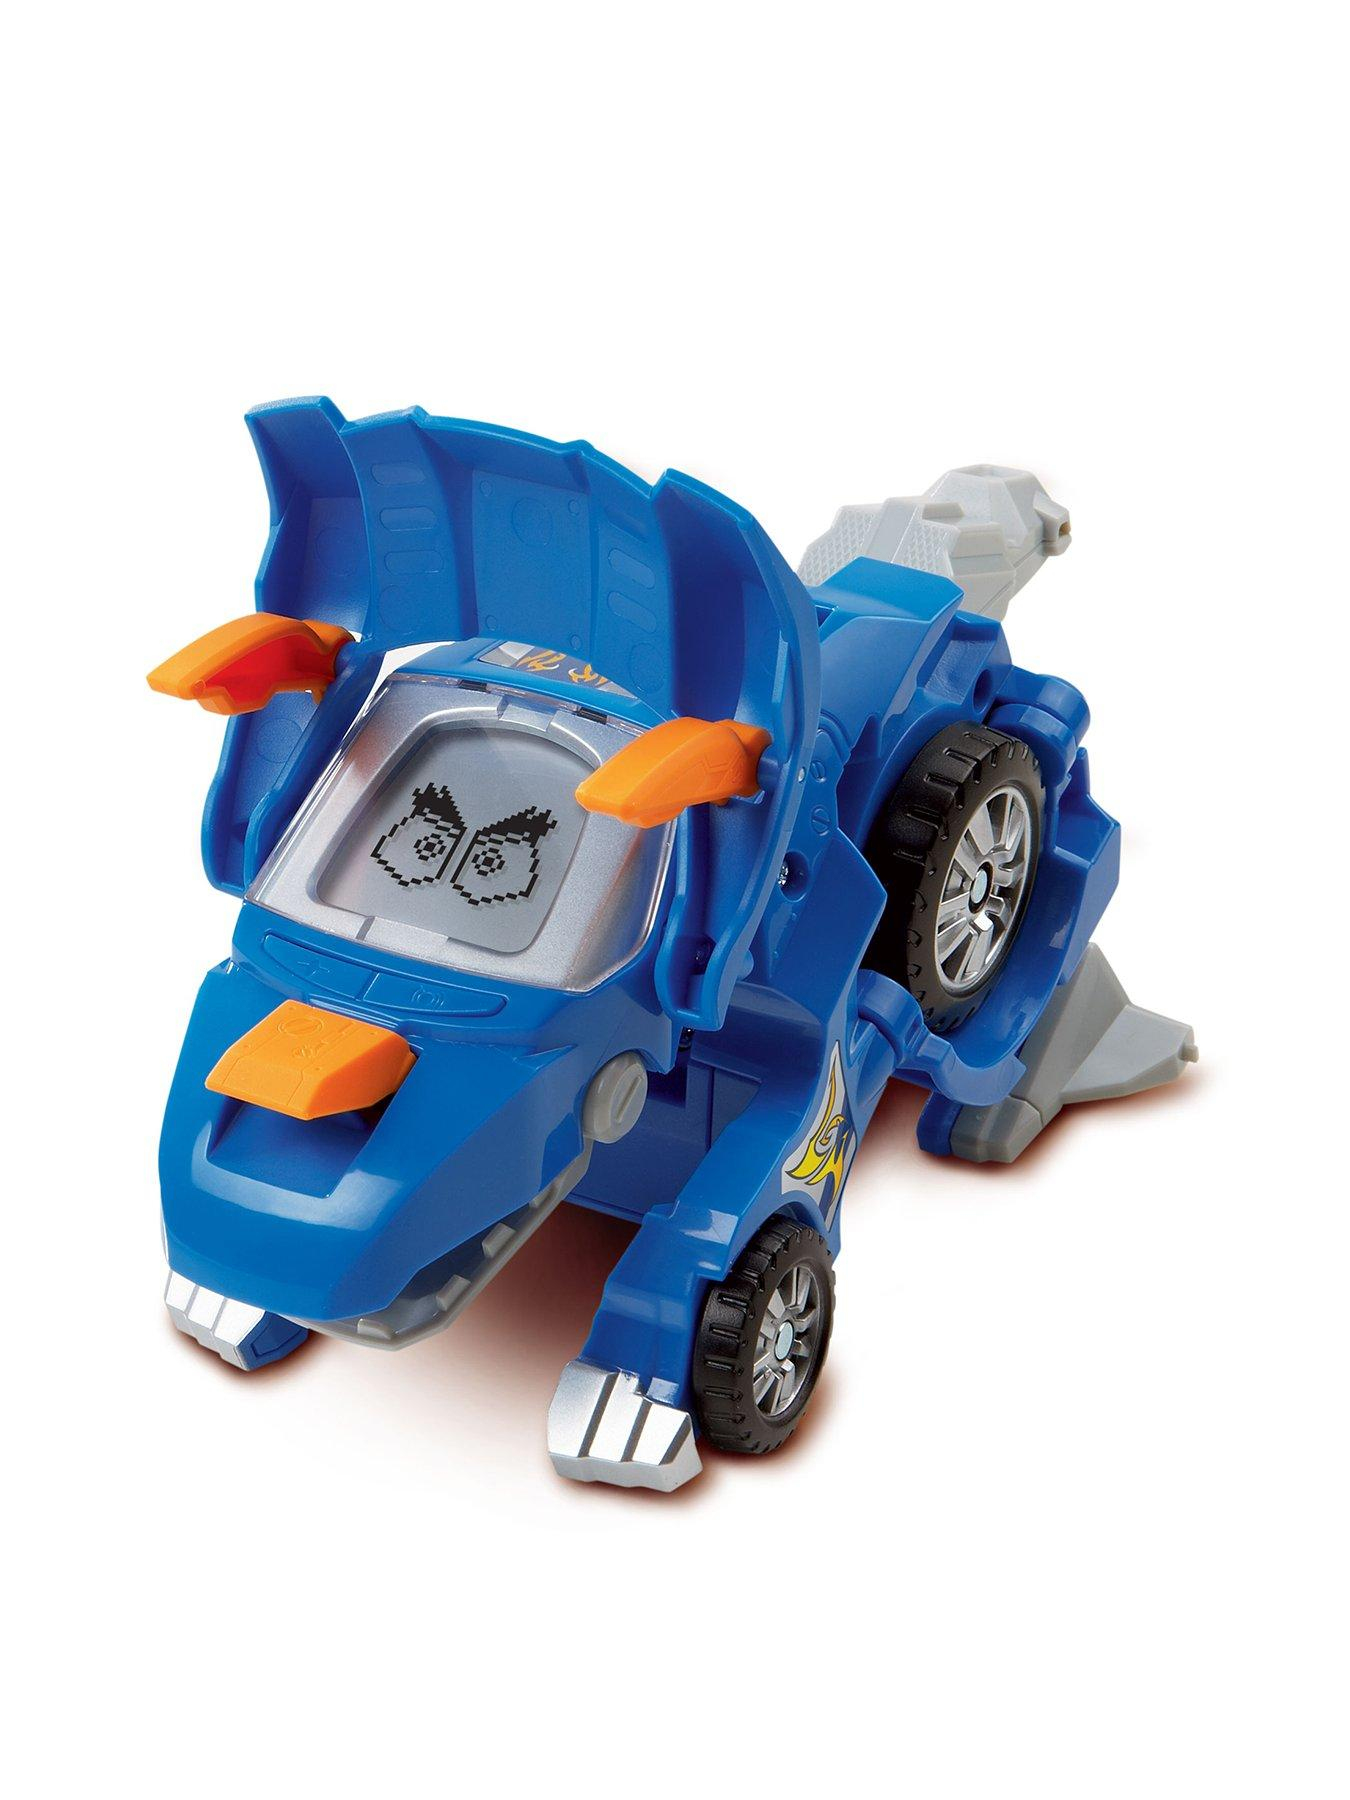 Horns The Triceratops Vtech Switch & Go Dinos Toys & Hobbies